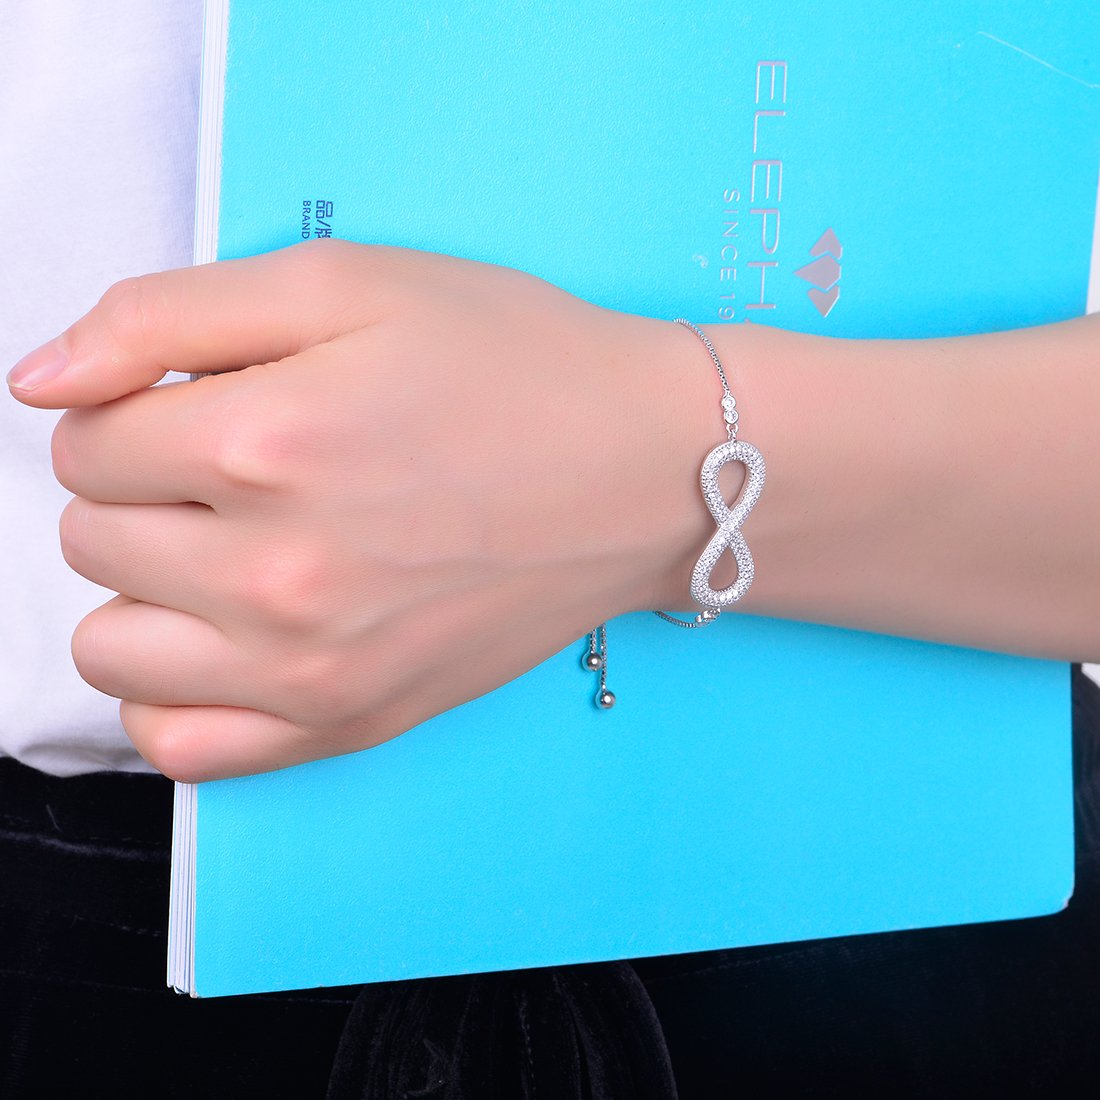 JiangXin Infinite Love Platinum Plated Bracelet for Women Girl with Adjustable Size Charm 925 Sterling Silver Fine Jewelry for Women Girls